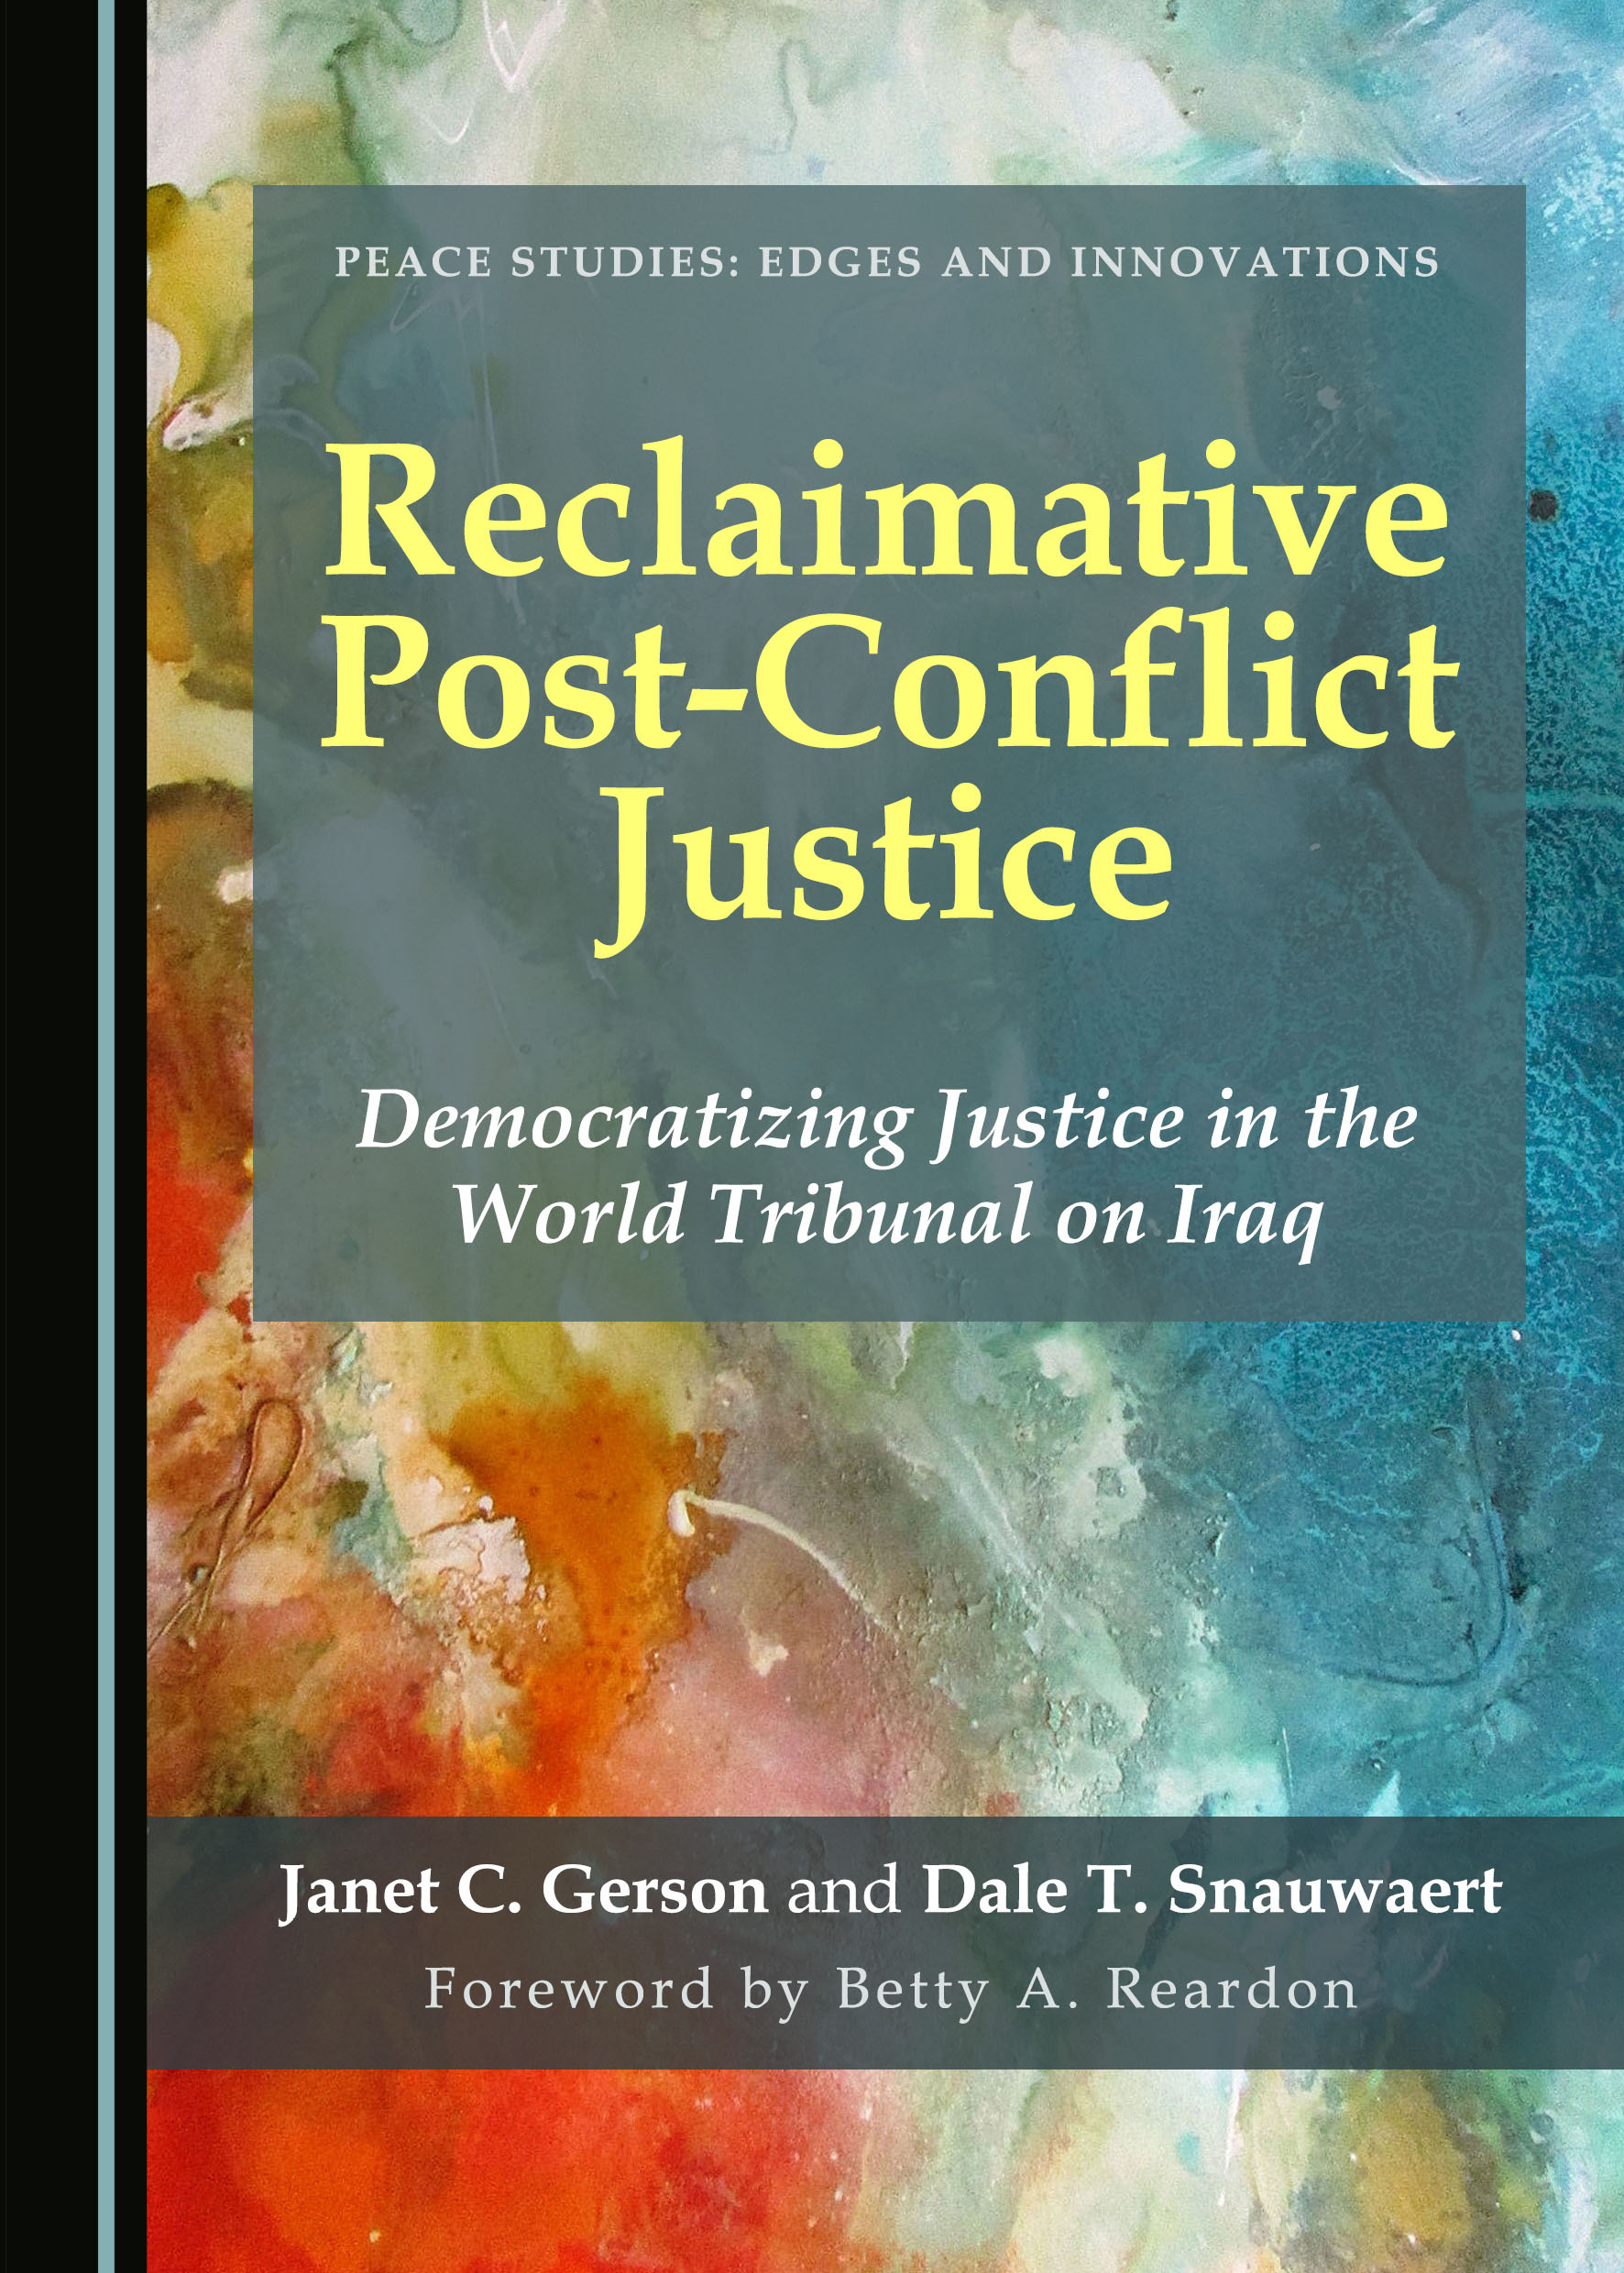 Reclaimative Post-Conflict Justice: Democratizing Justice in the World Tribunal on Iraq